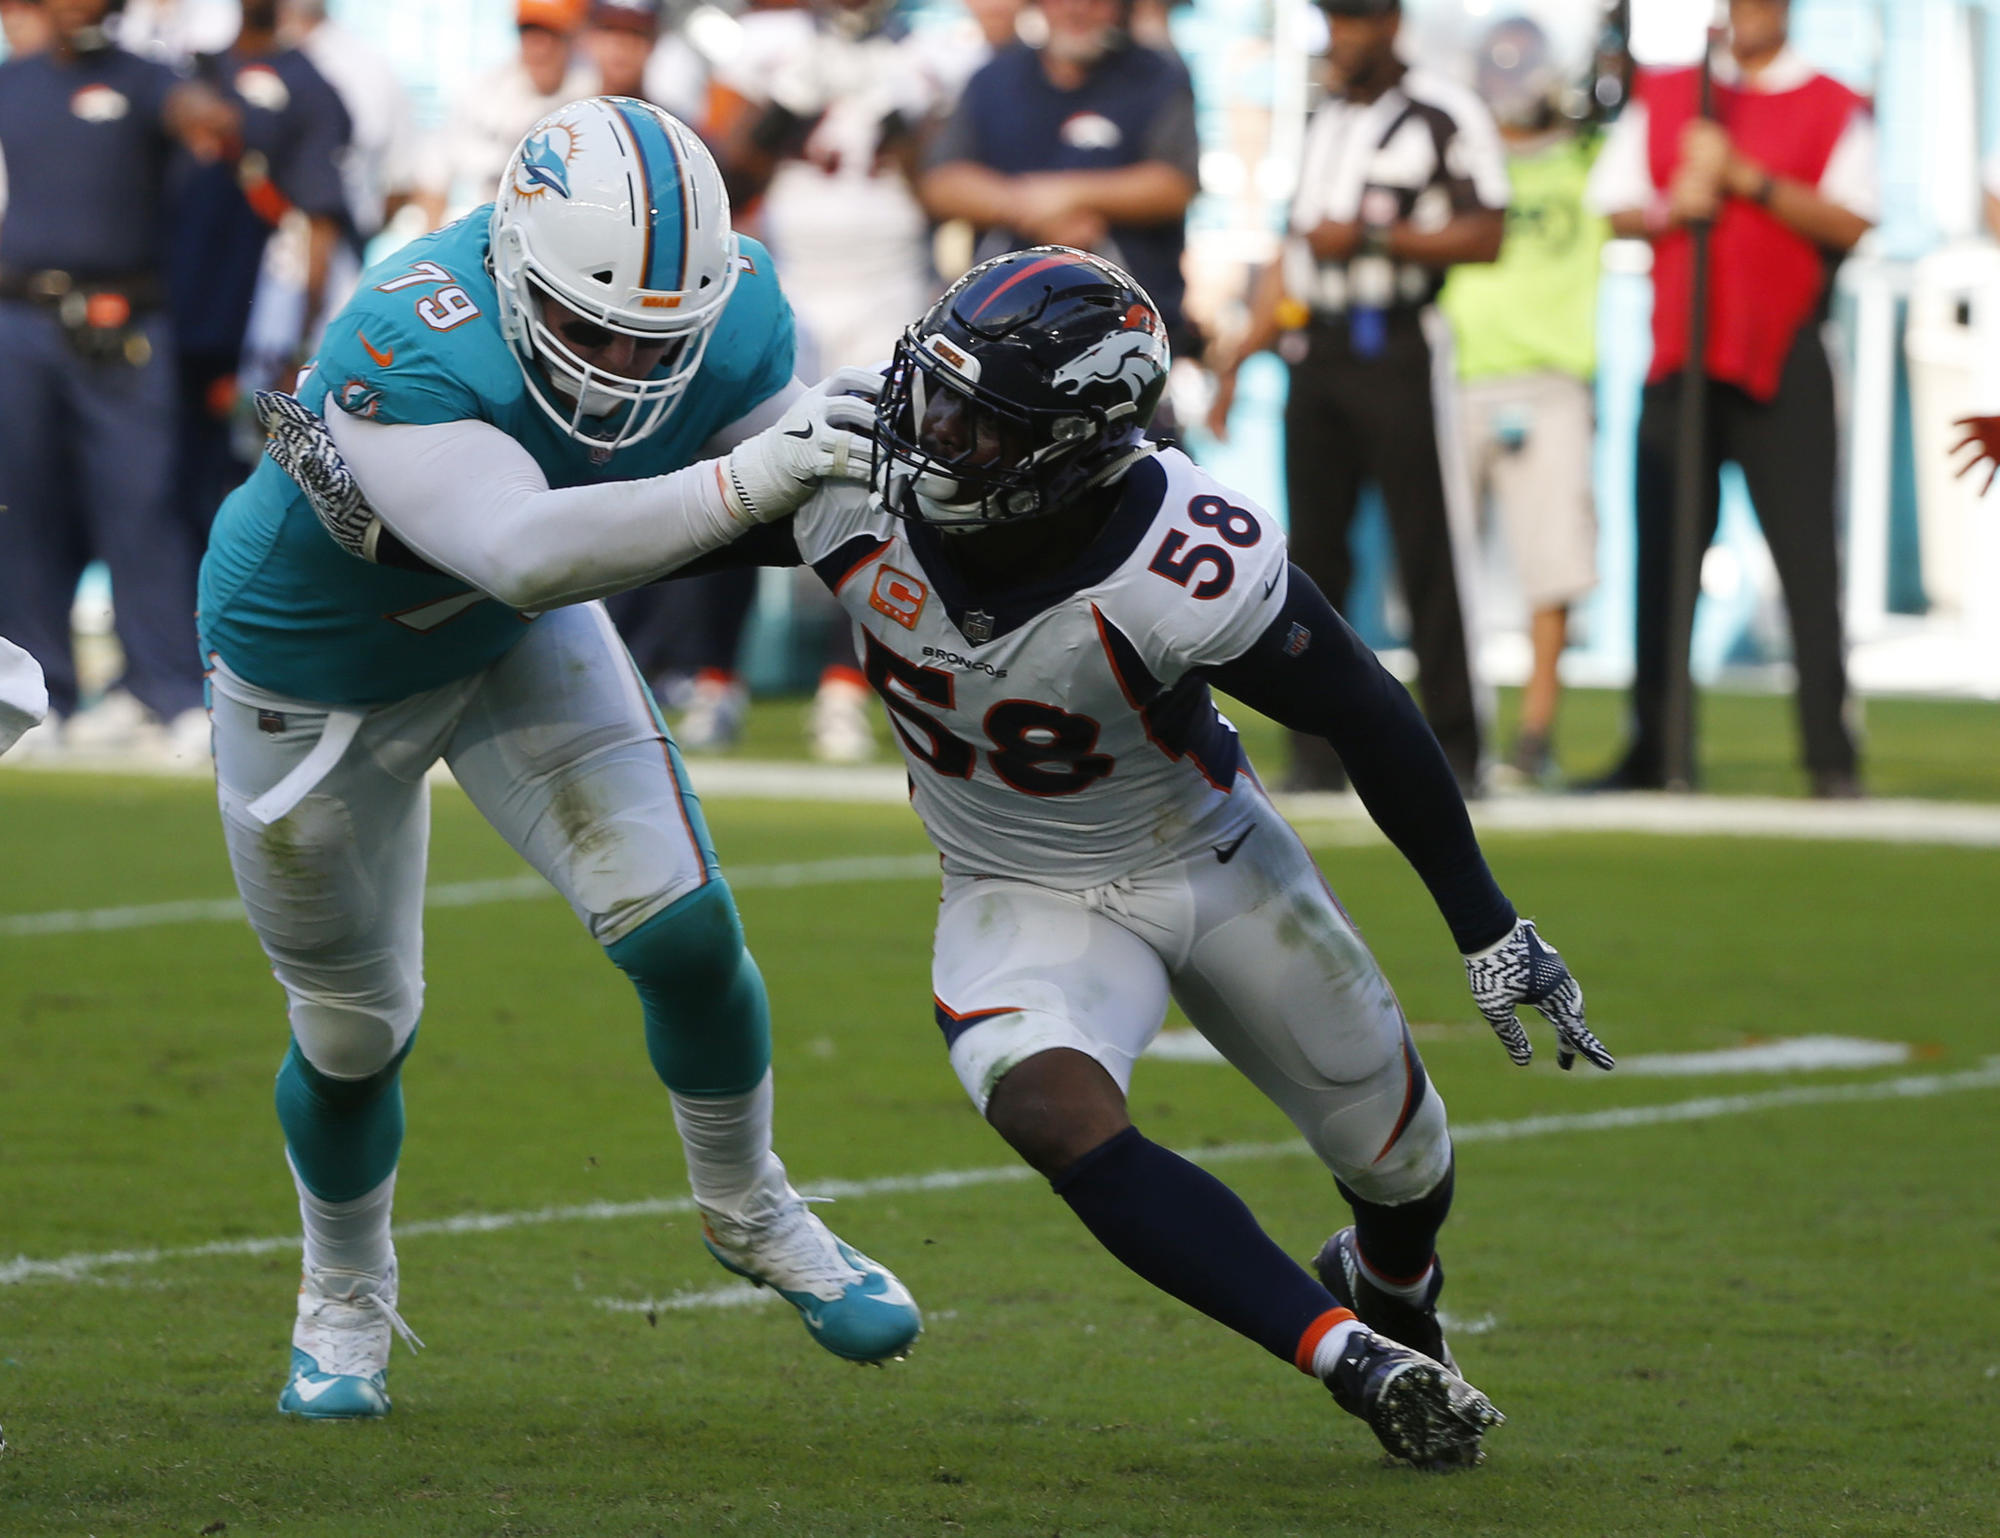 Fl-sp-miami-dolphins-re-sign-sam-young-032318